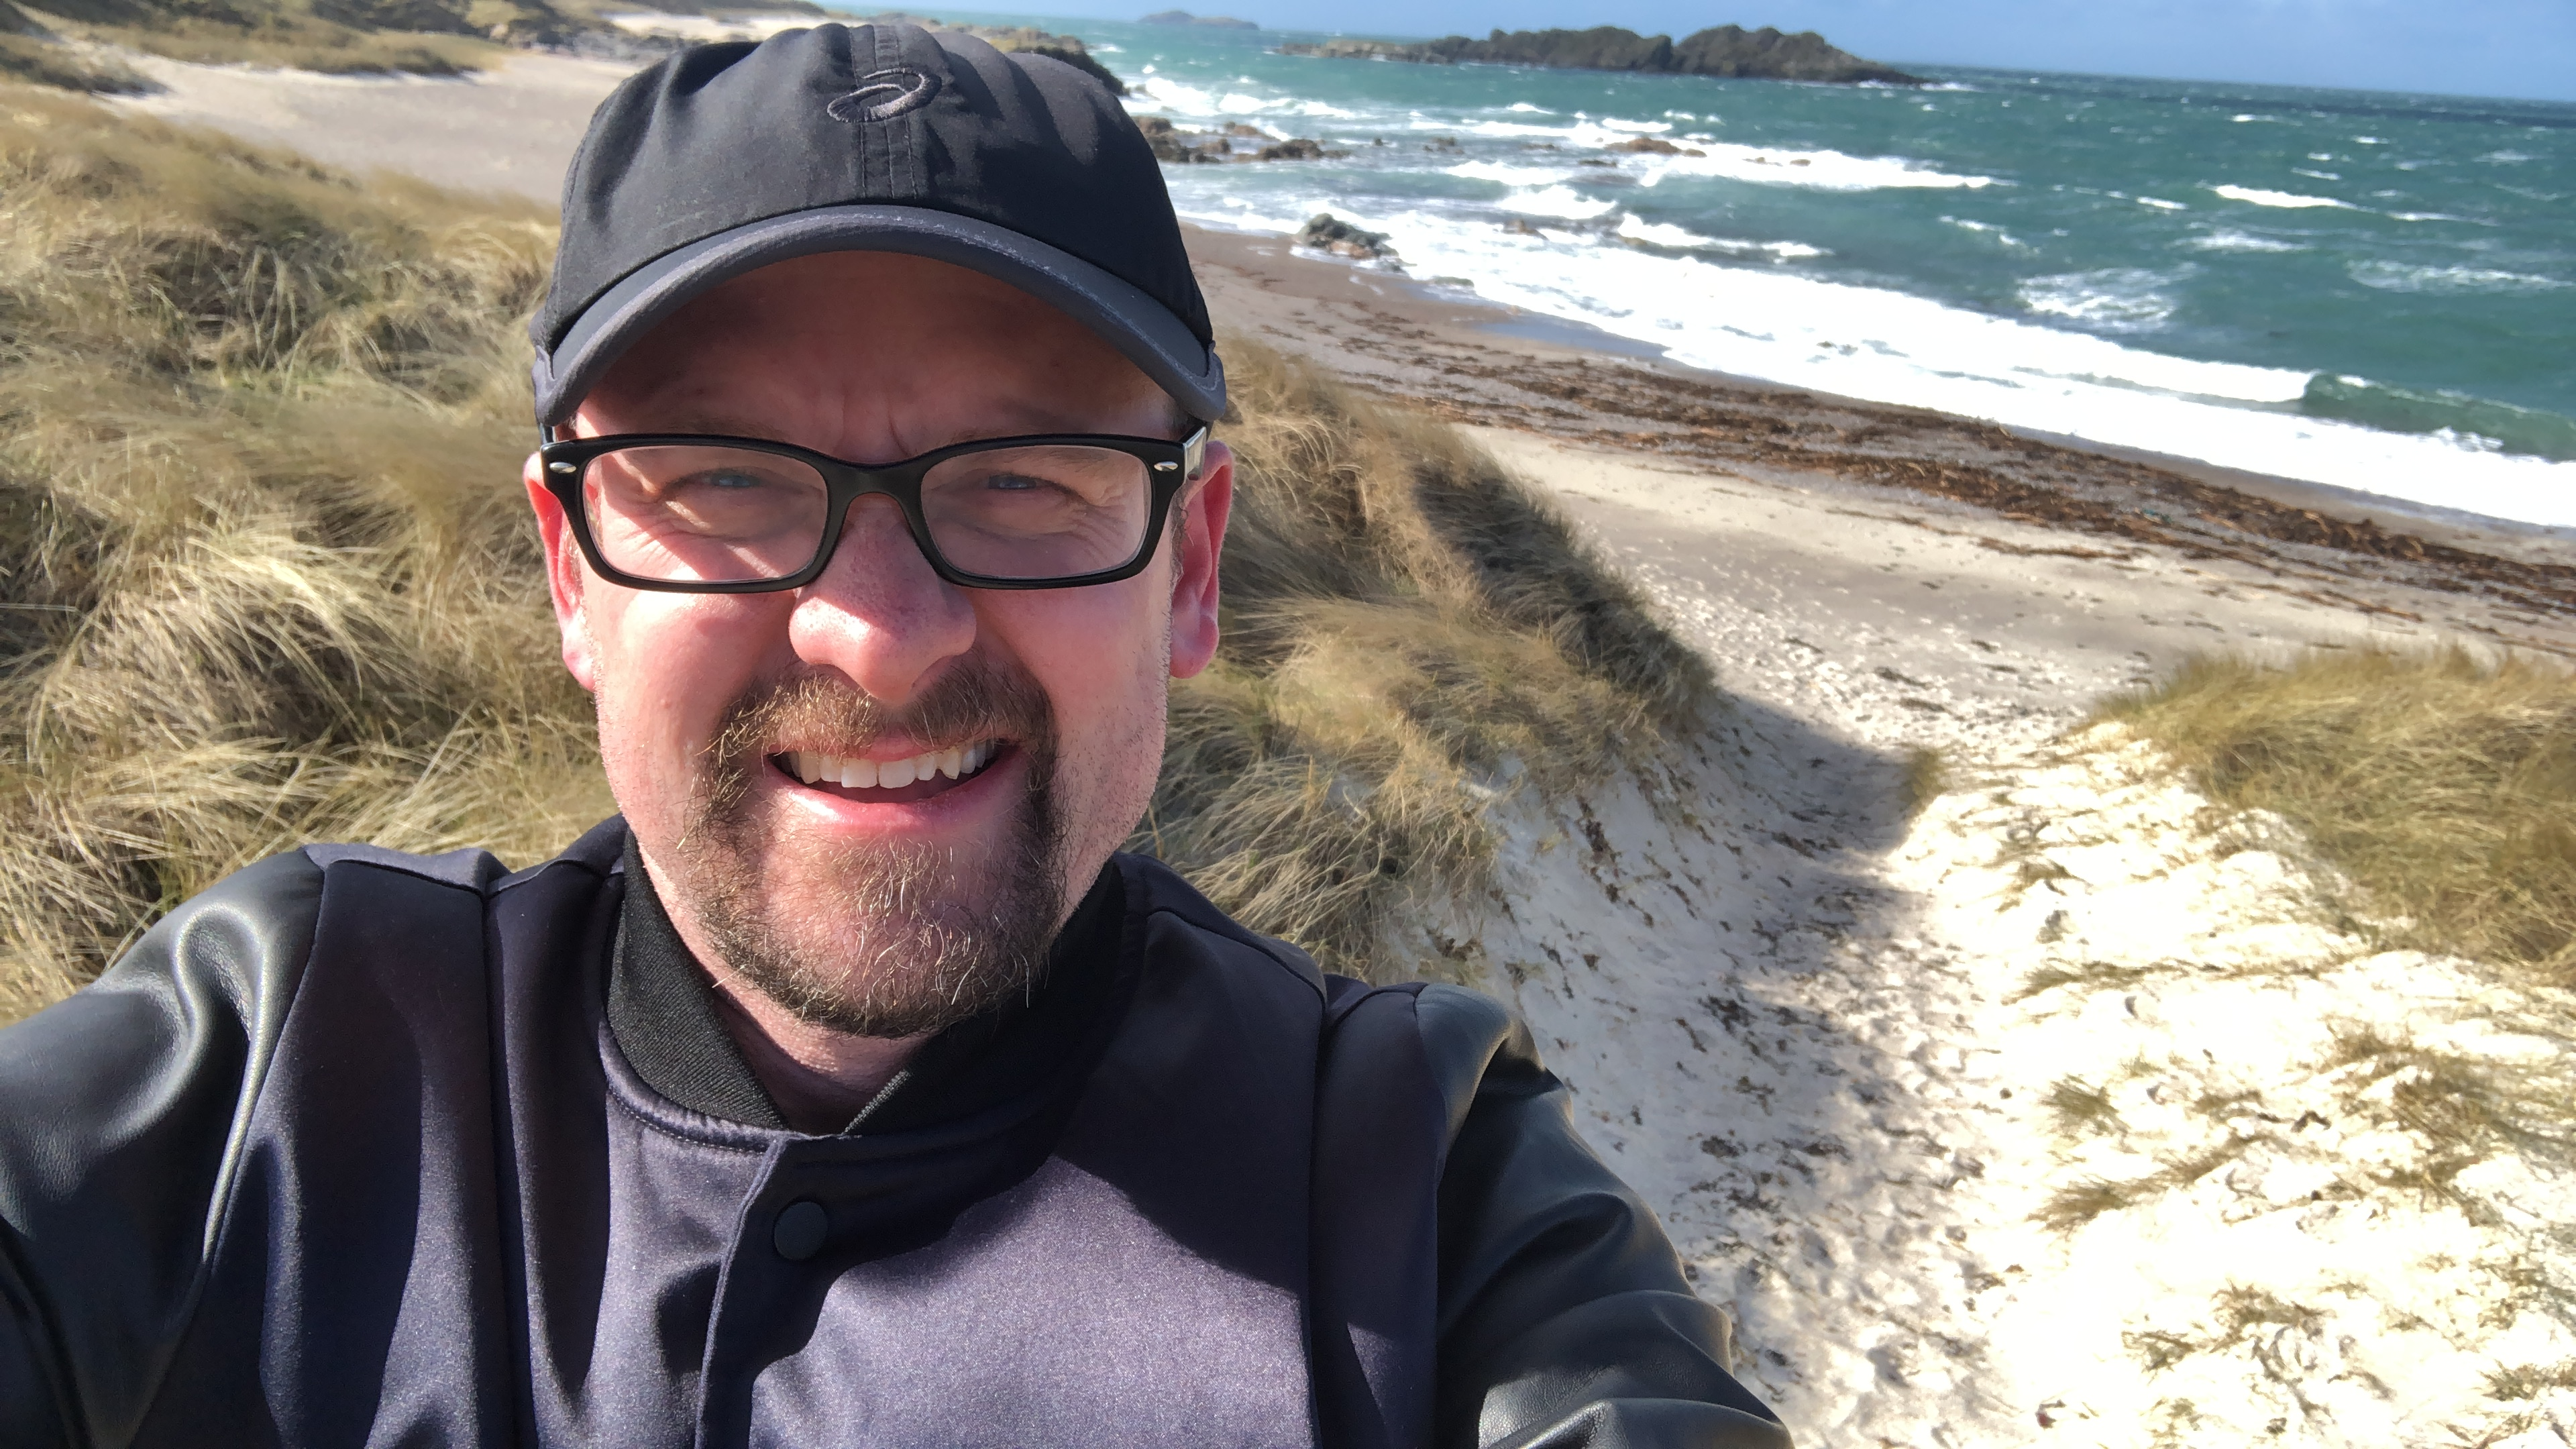 Selfie with an Iona beach in the background